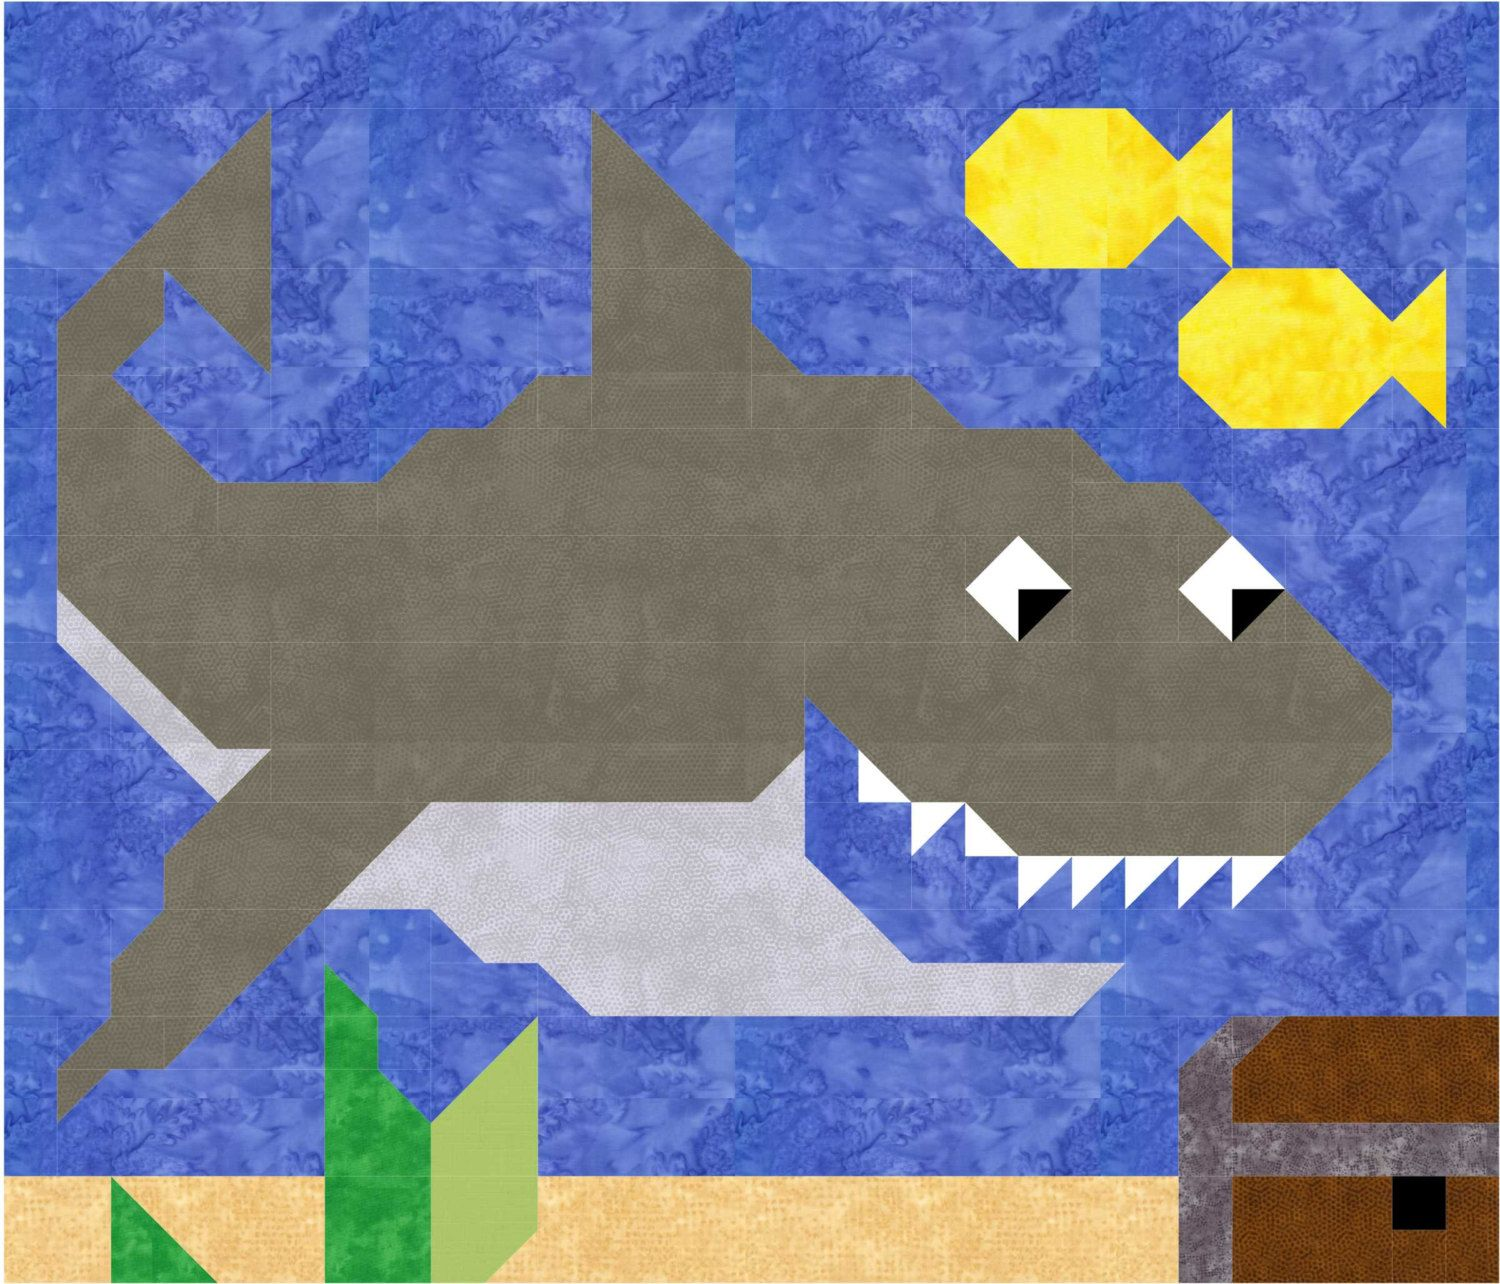 Shark quilt pattern with instructions for 3 sizes by CountedQuilts ... : shark quilt - Adamdwight.com